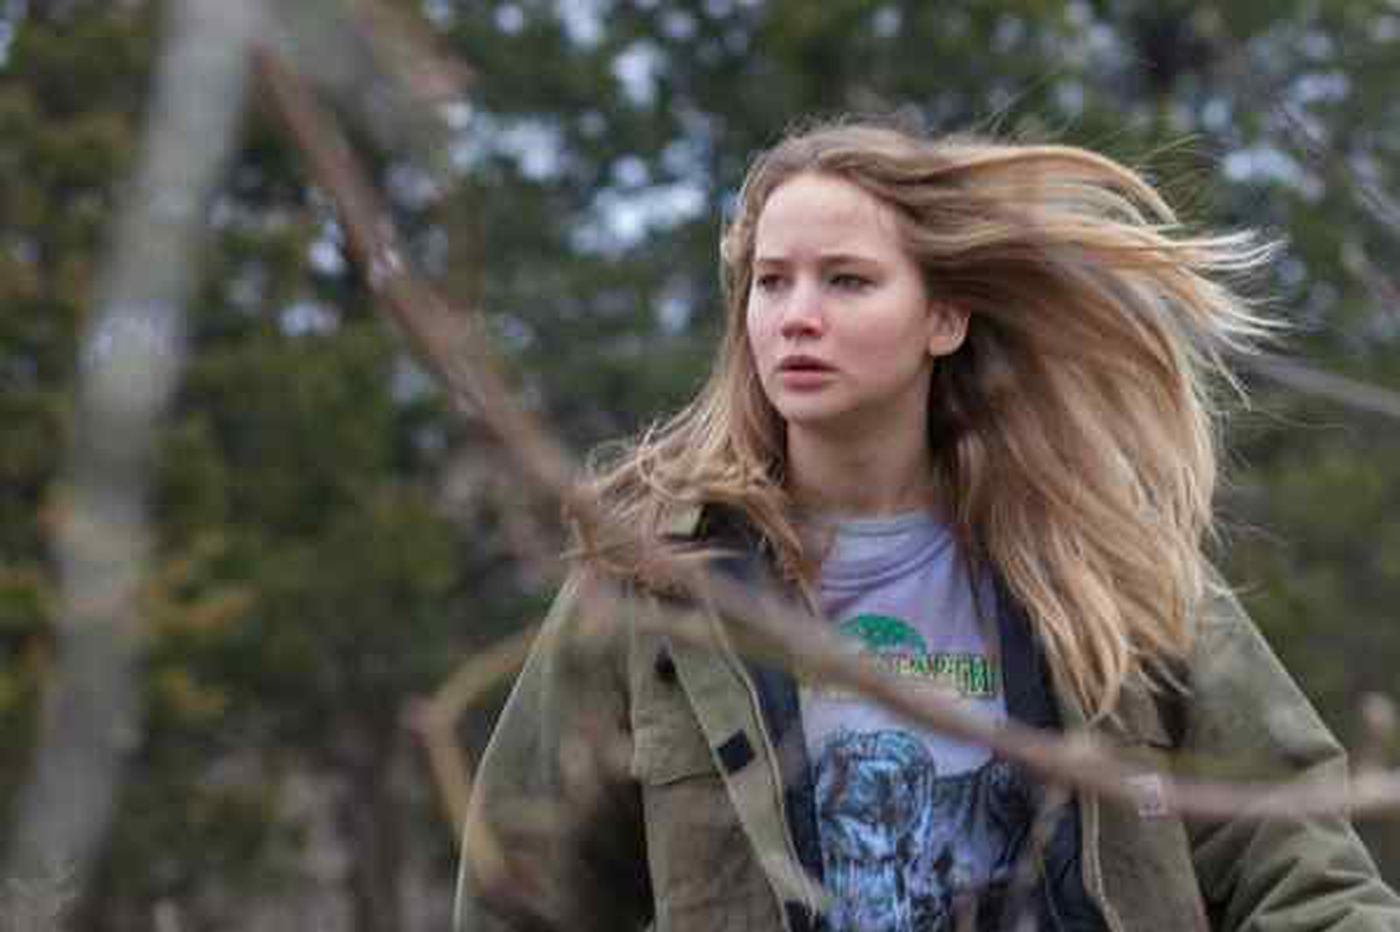 On Movies: An urbane director tackles life in the Ozarks